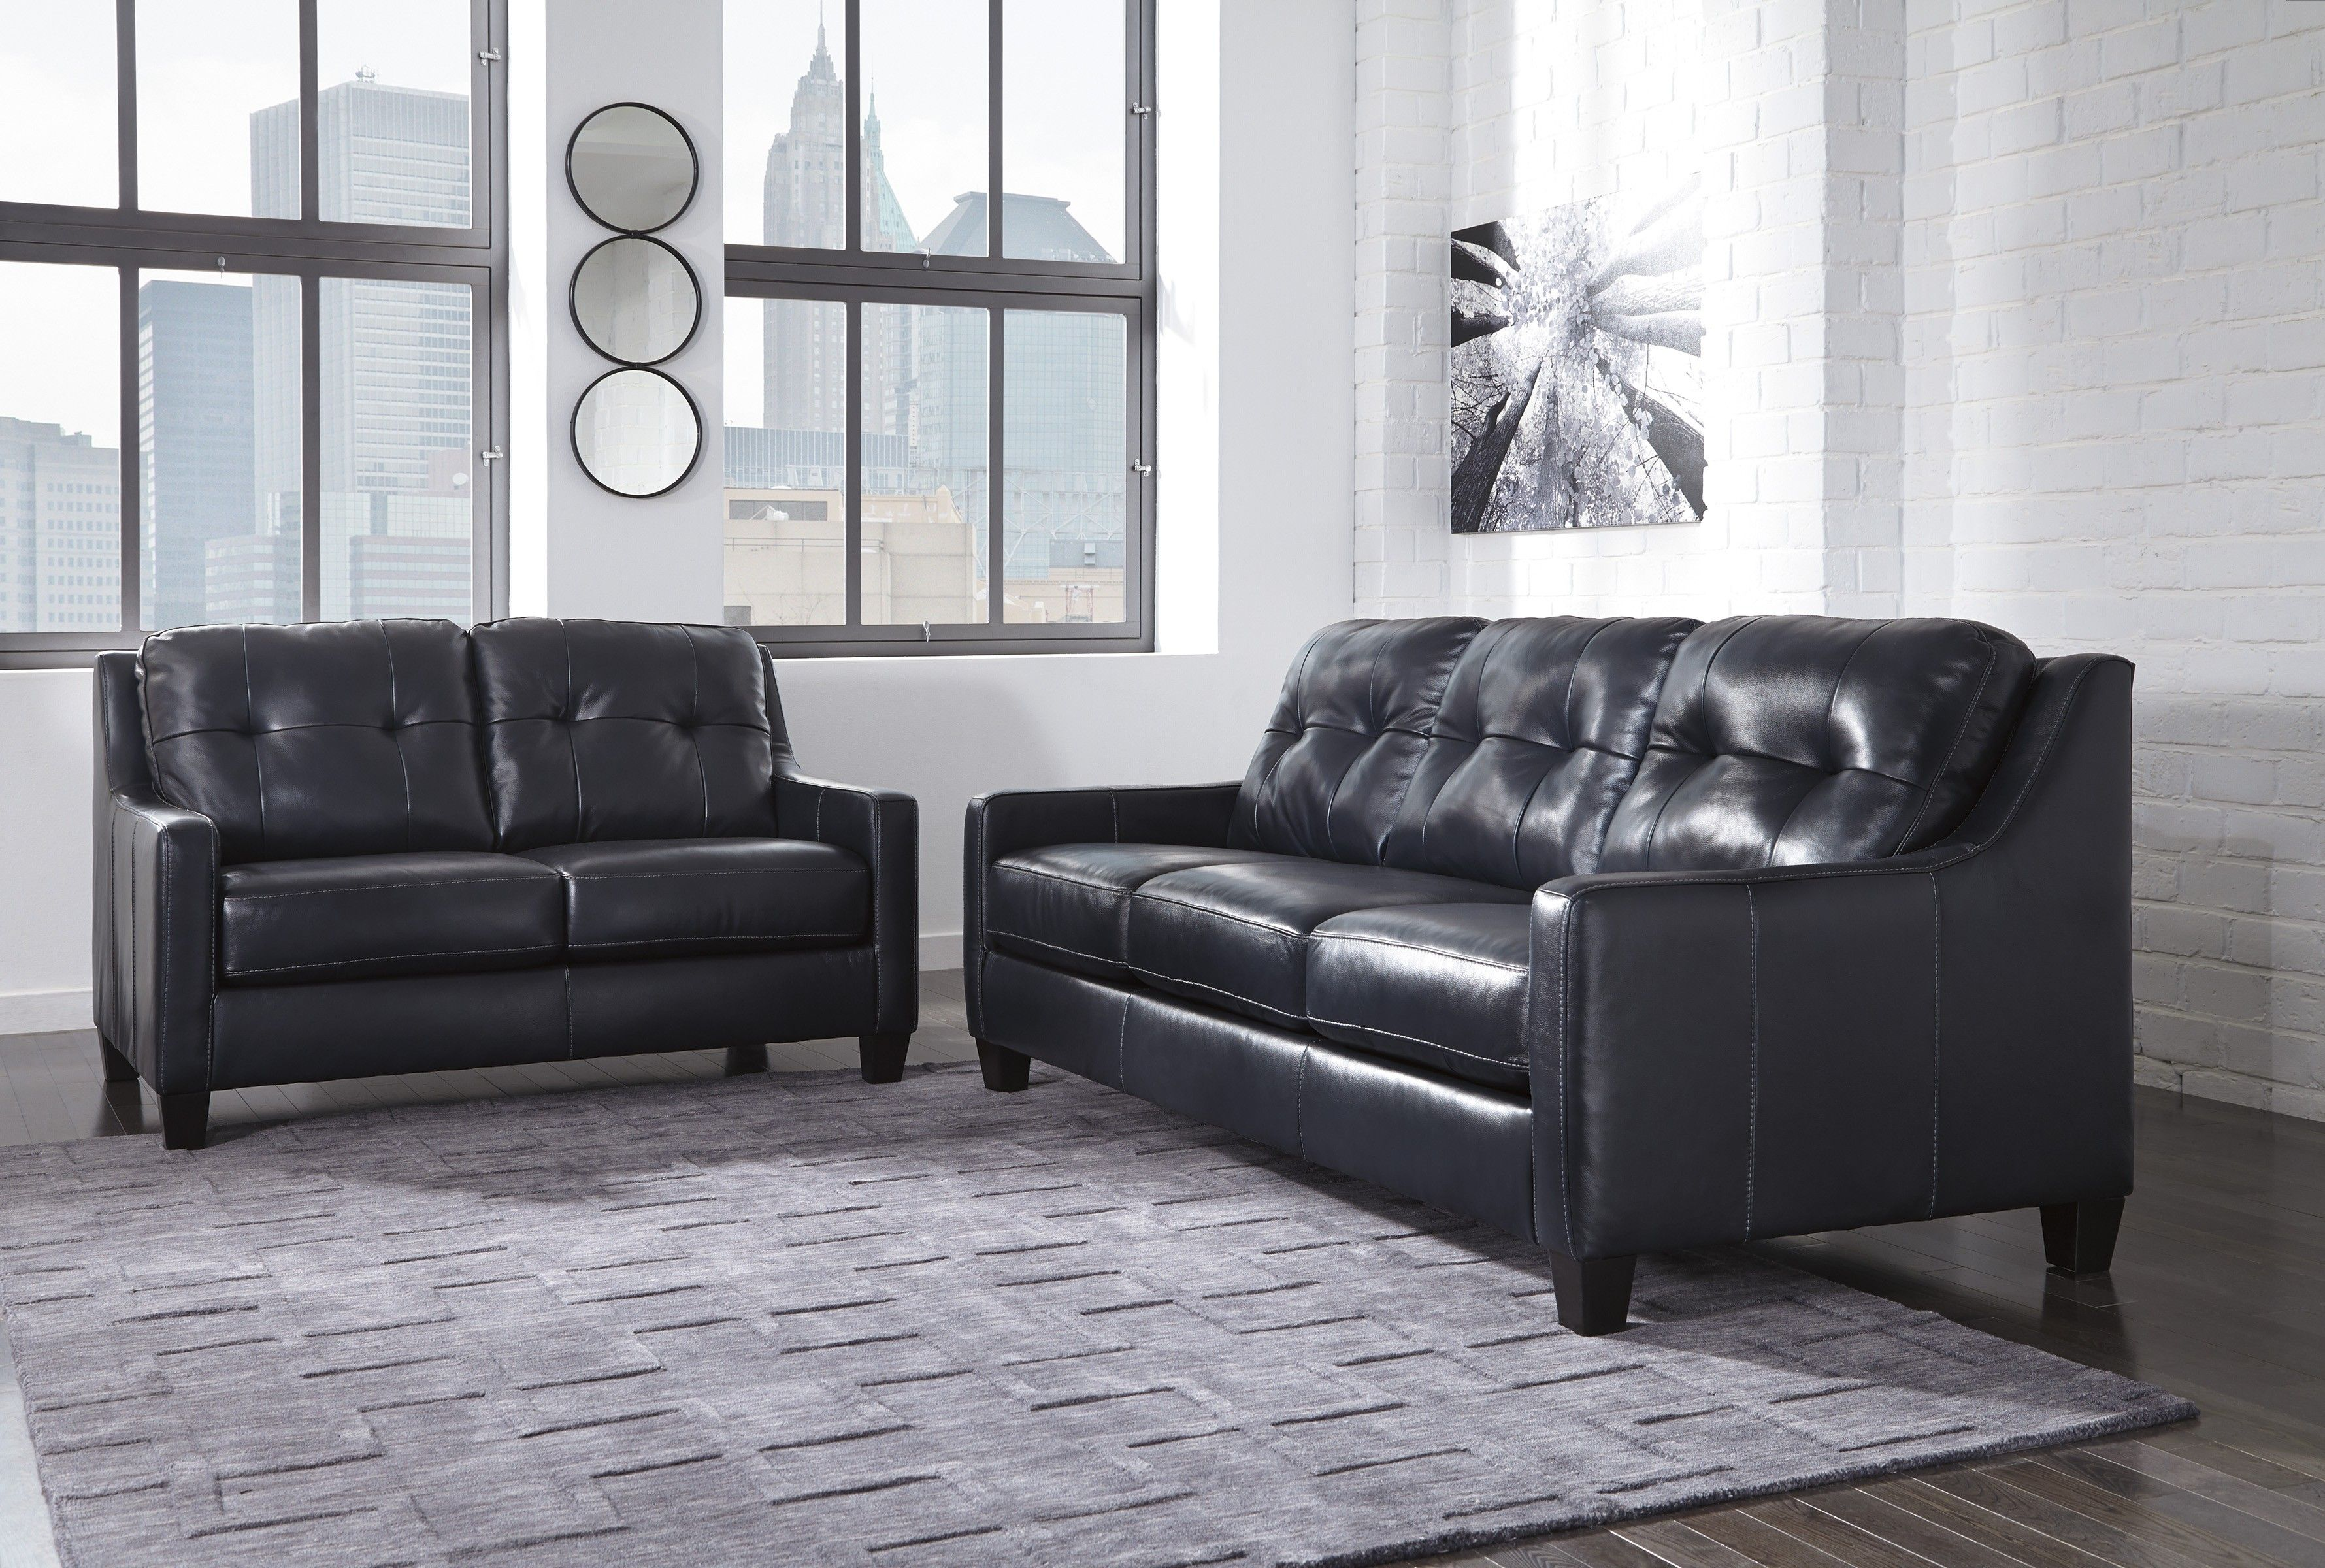 Navy Leather Sofa (With images) | Cheap living room sets ...